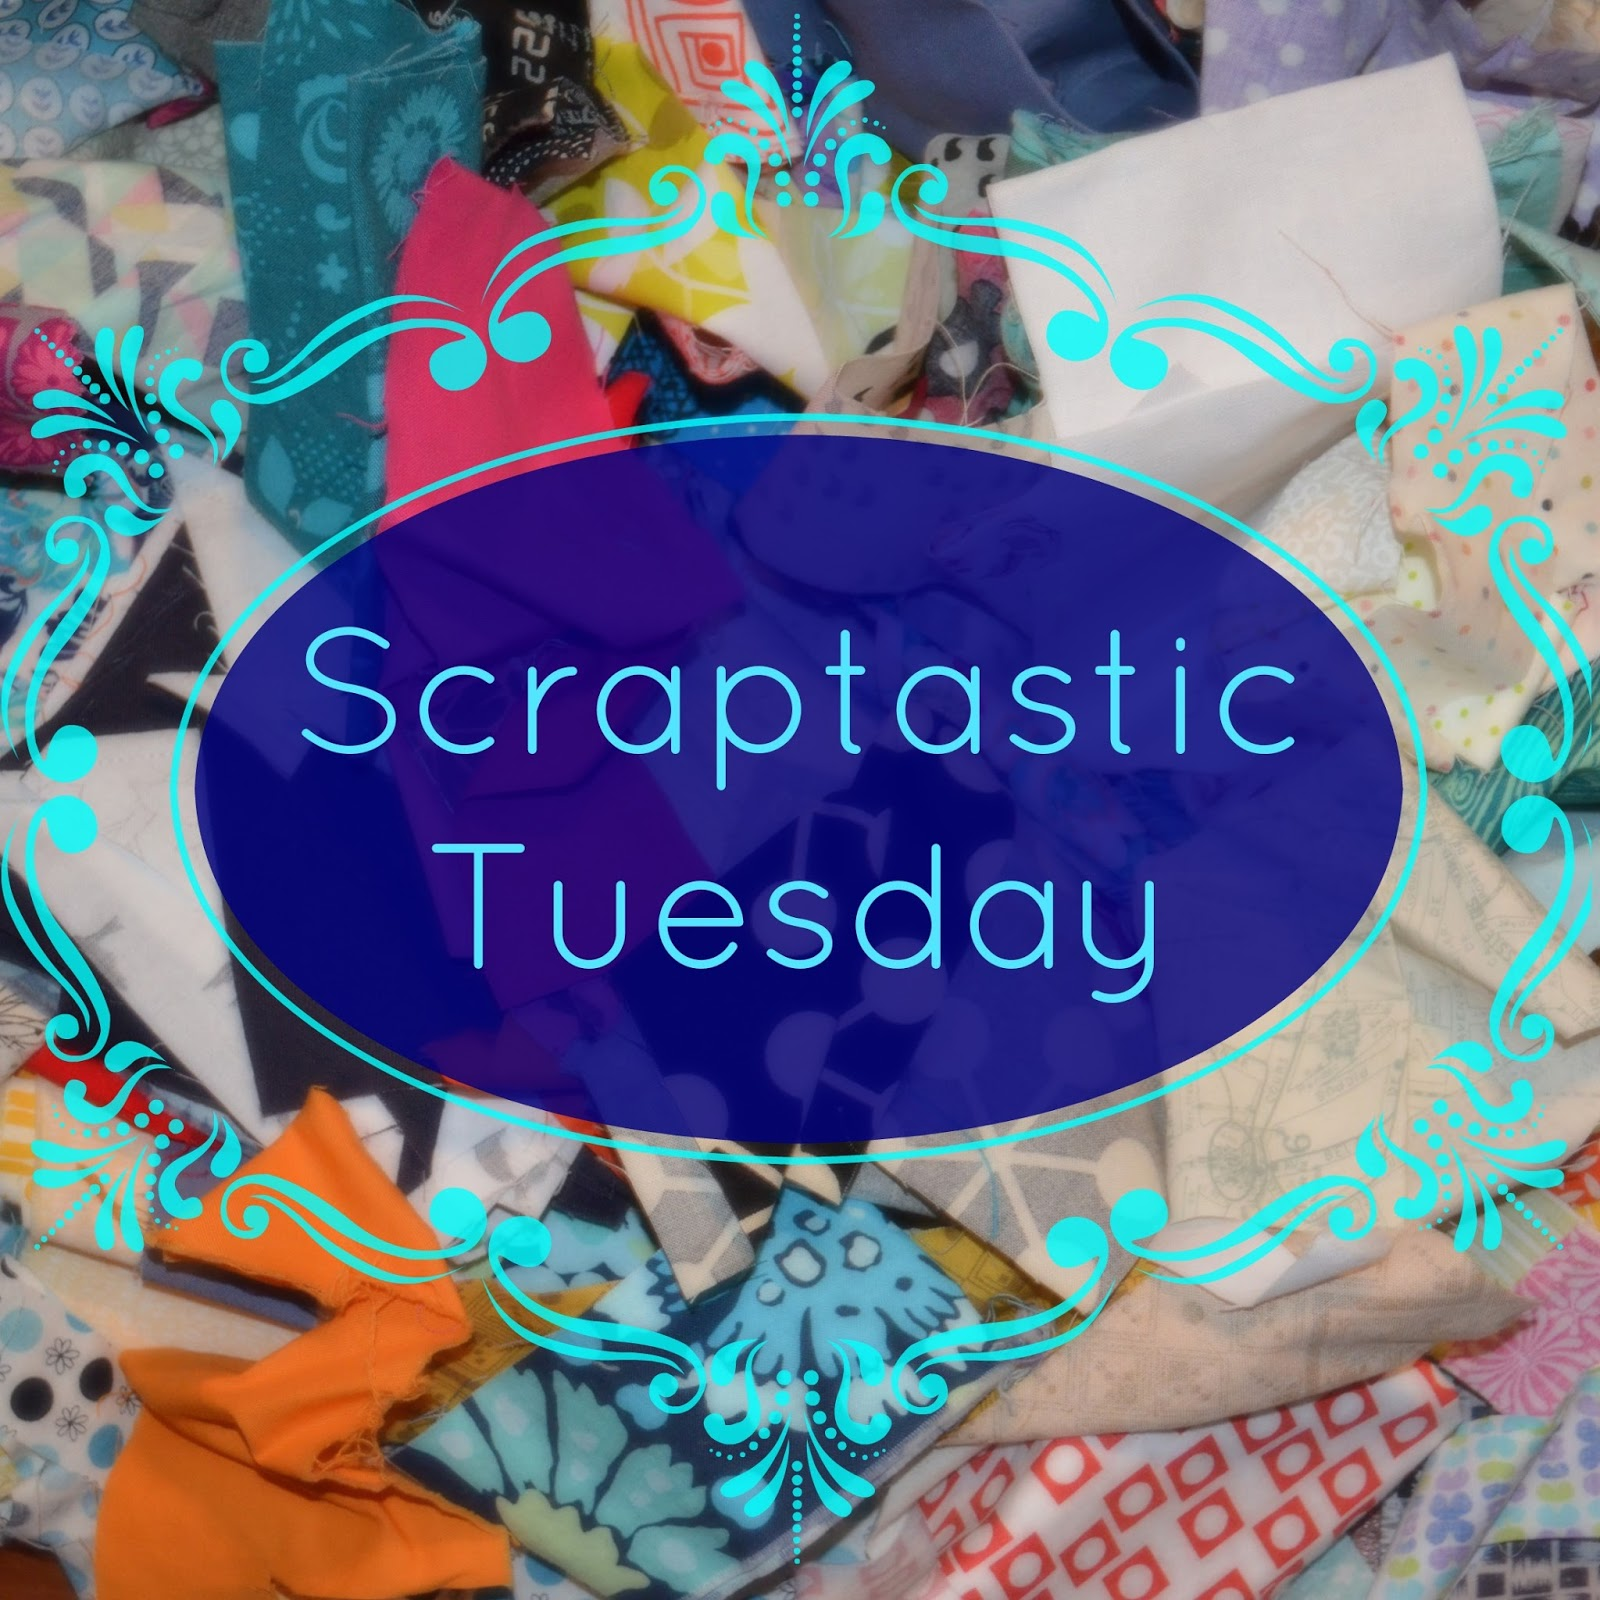 http://www.shecanquilt.ca/2014/10/scraptastic-tuesday-monthly-linkup.html